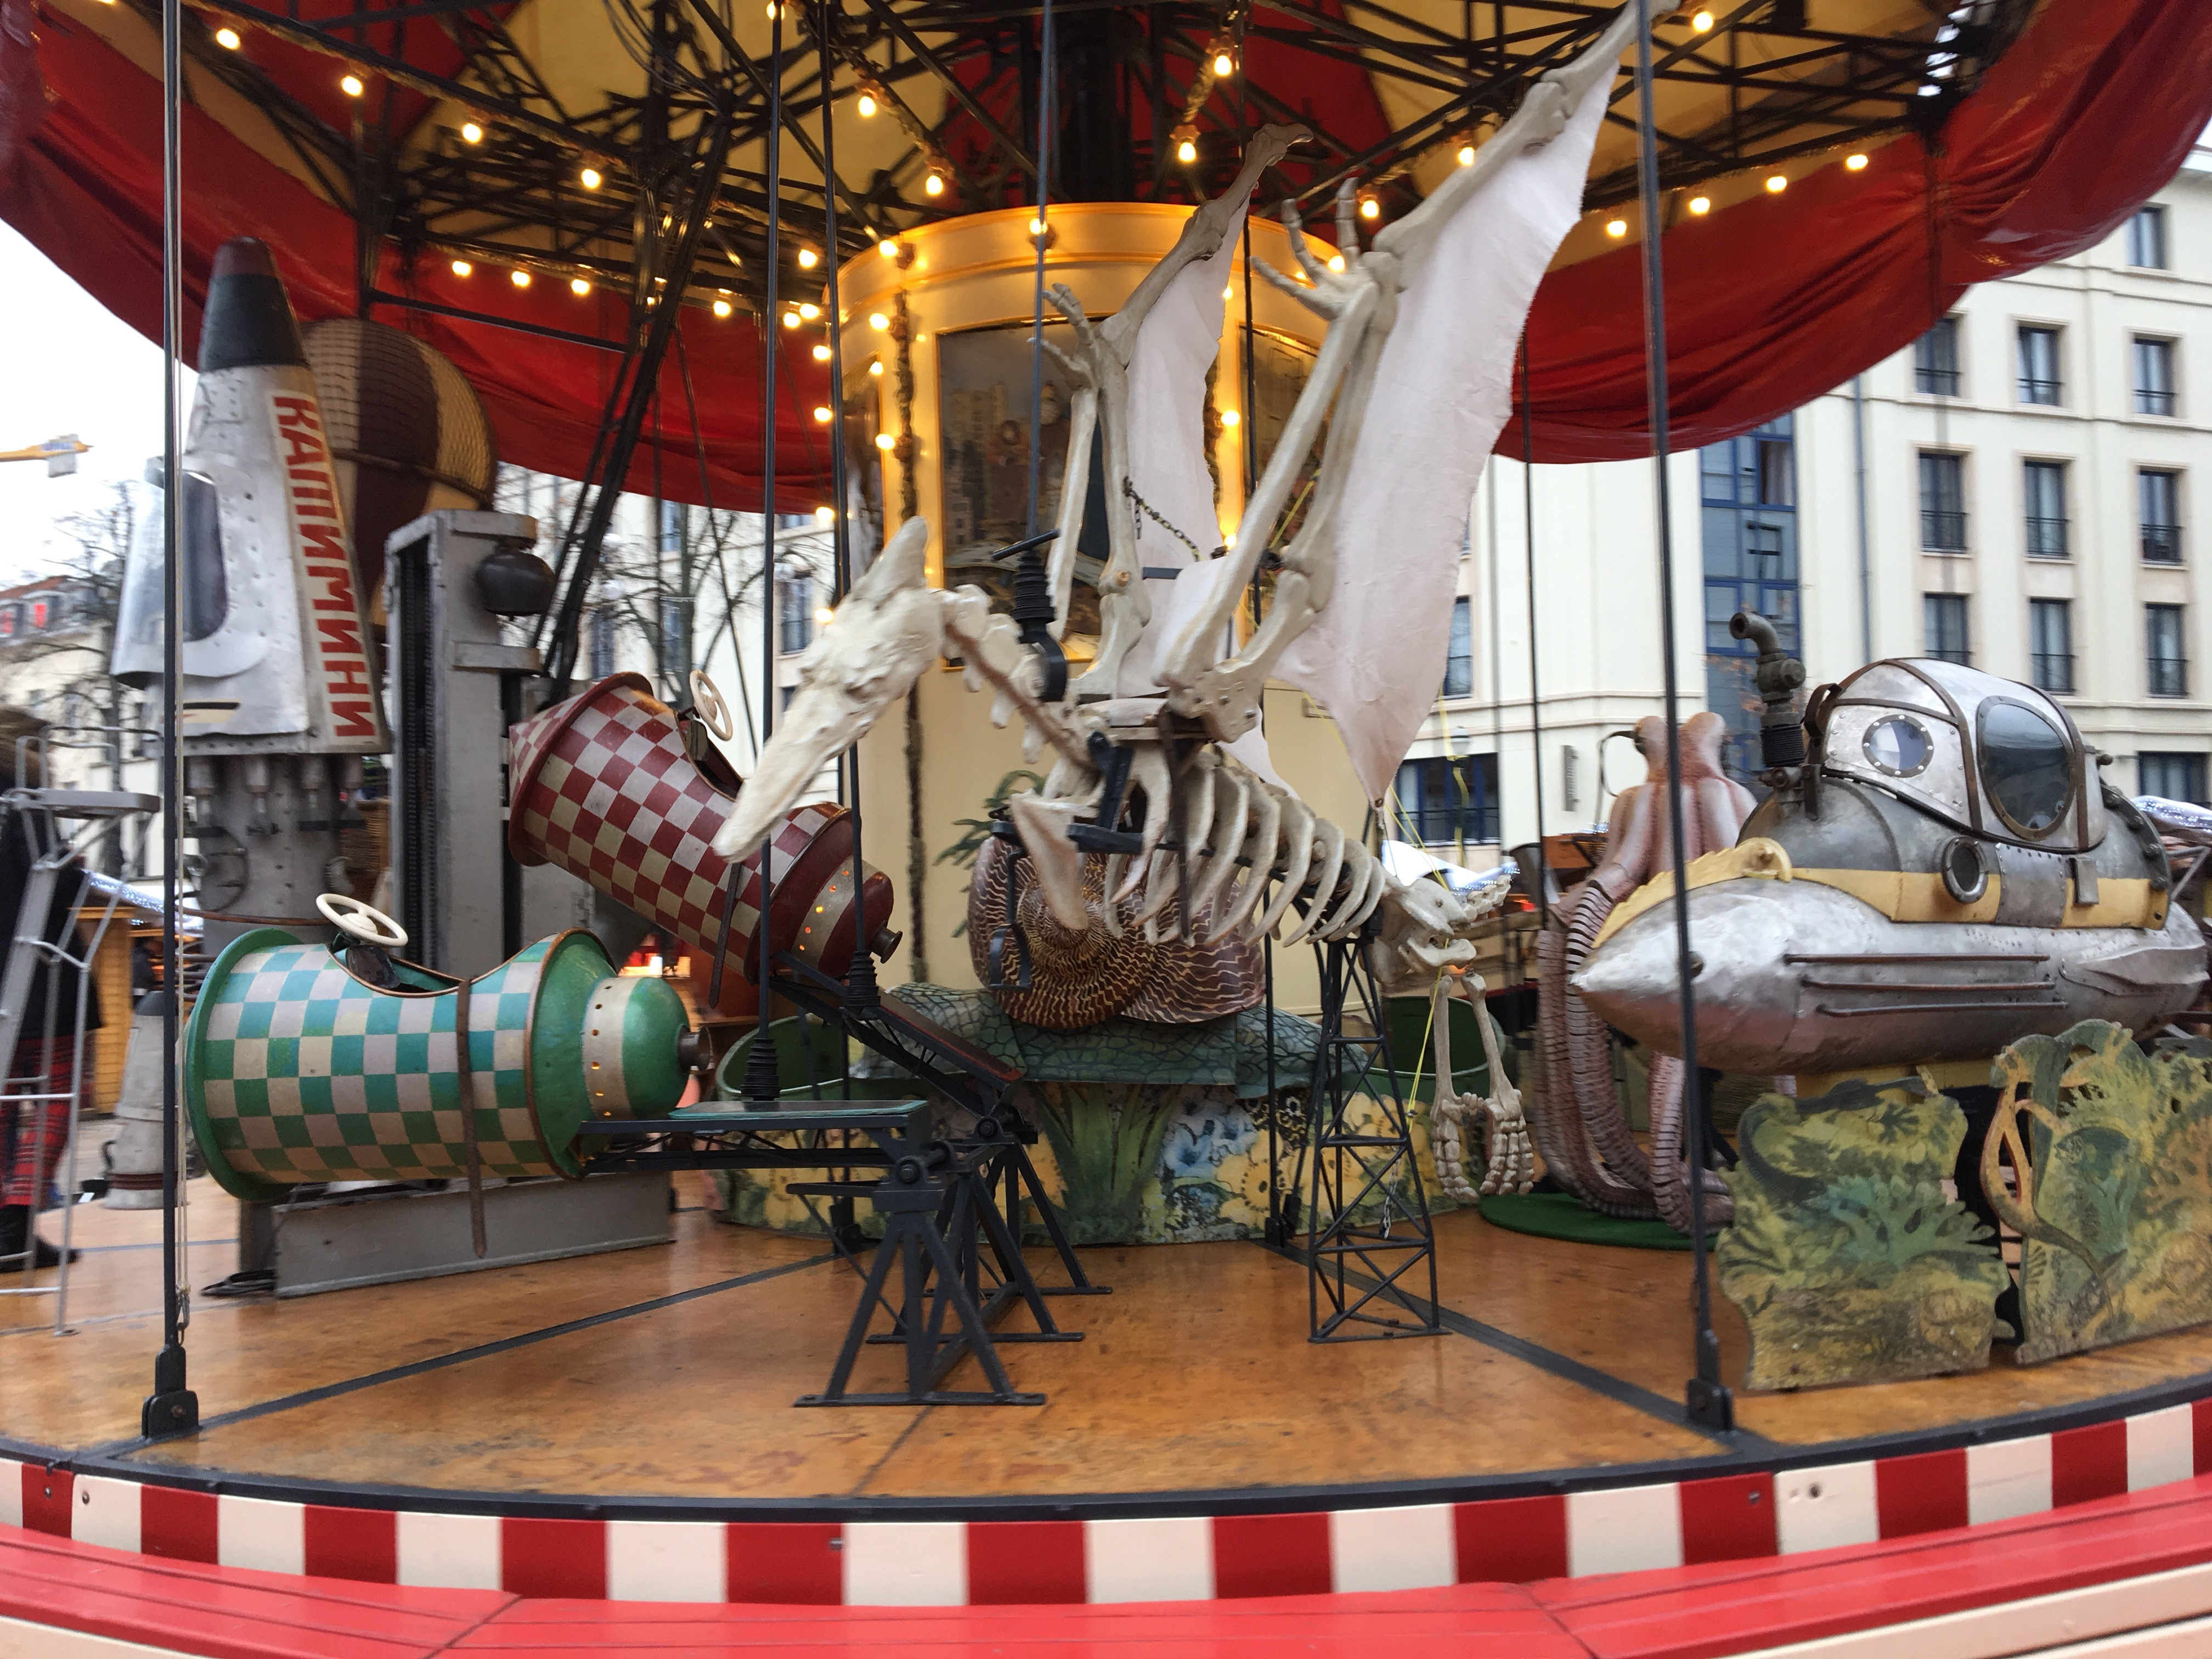 More fairground rides should attempt to scare children away.